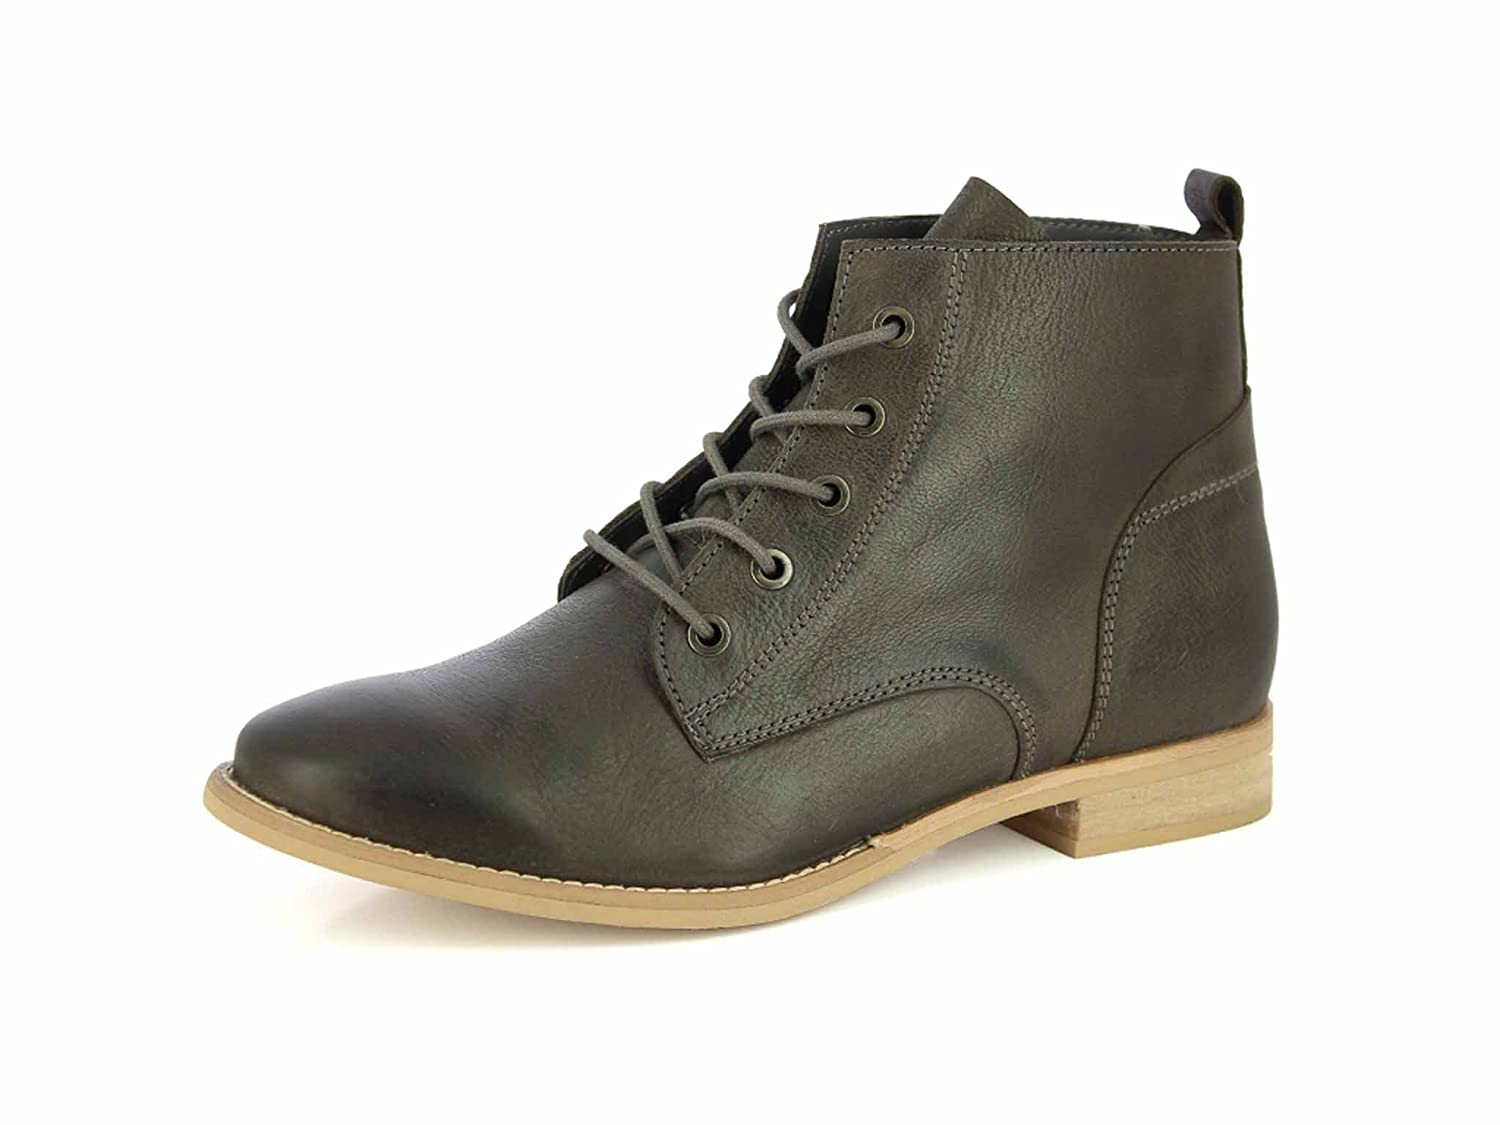 ALBERTO TORRESI Leather Ankle Boots For Women Lace Up Casual Durbey Shoes Combat Boots Booties B0742CT45R 8.5 B(M) US|Grey